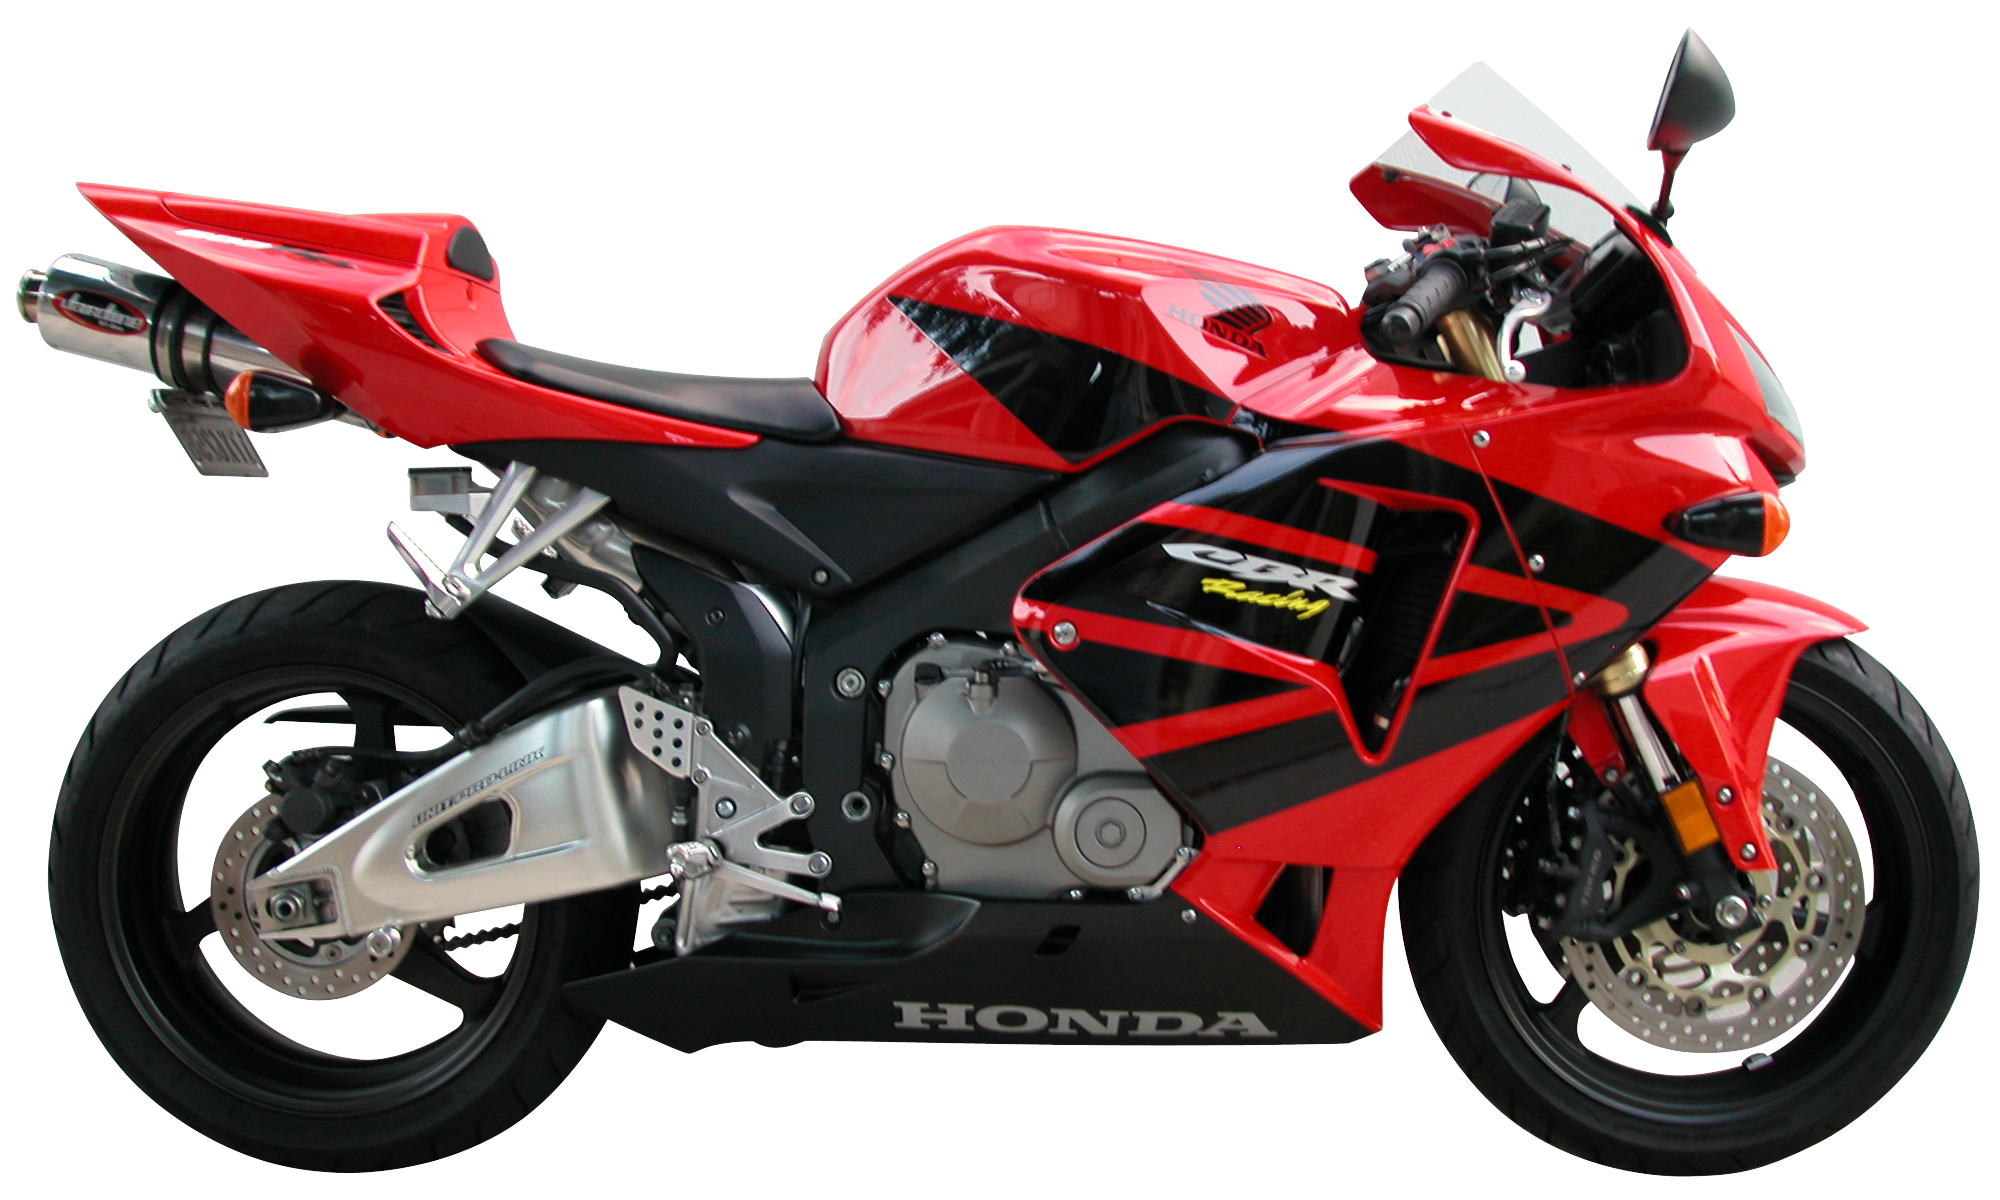 Motorcycle png. Images free pictures download